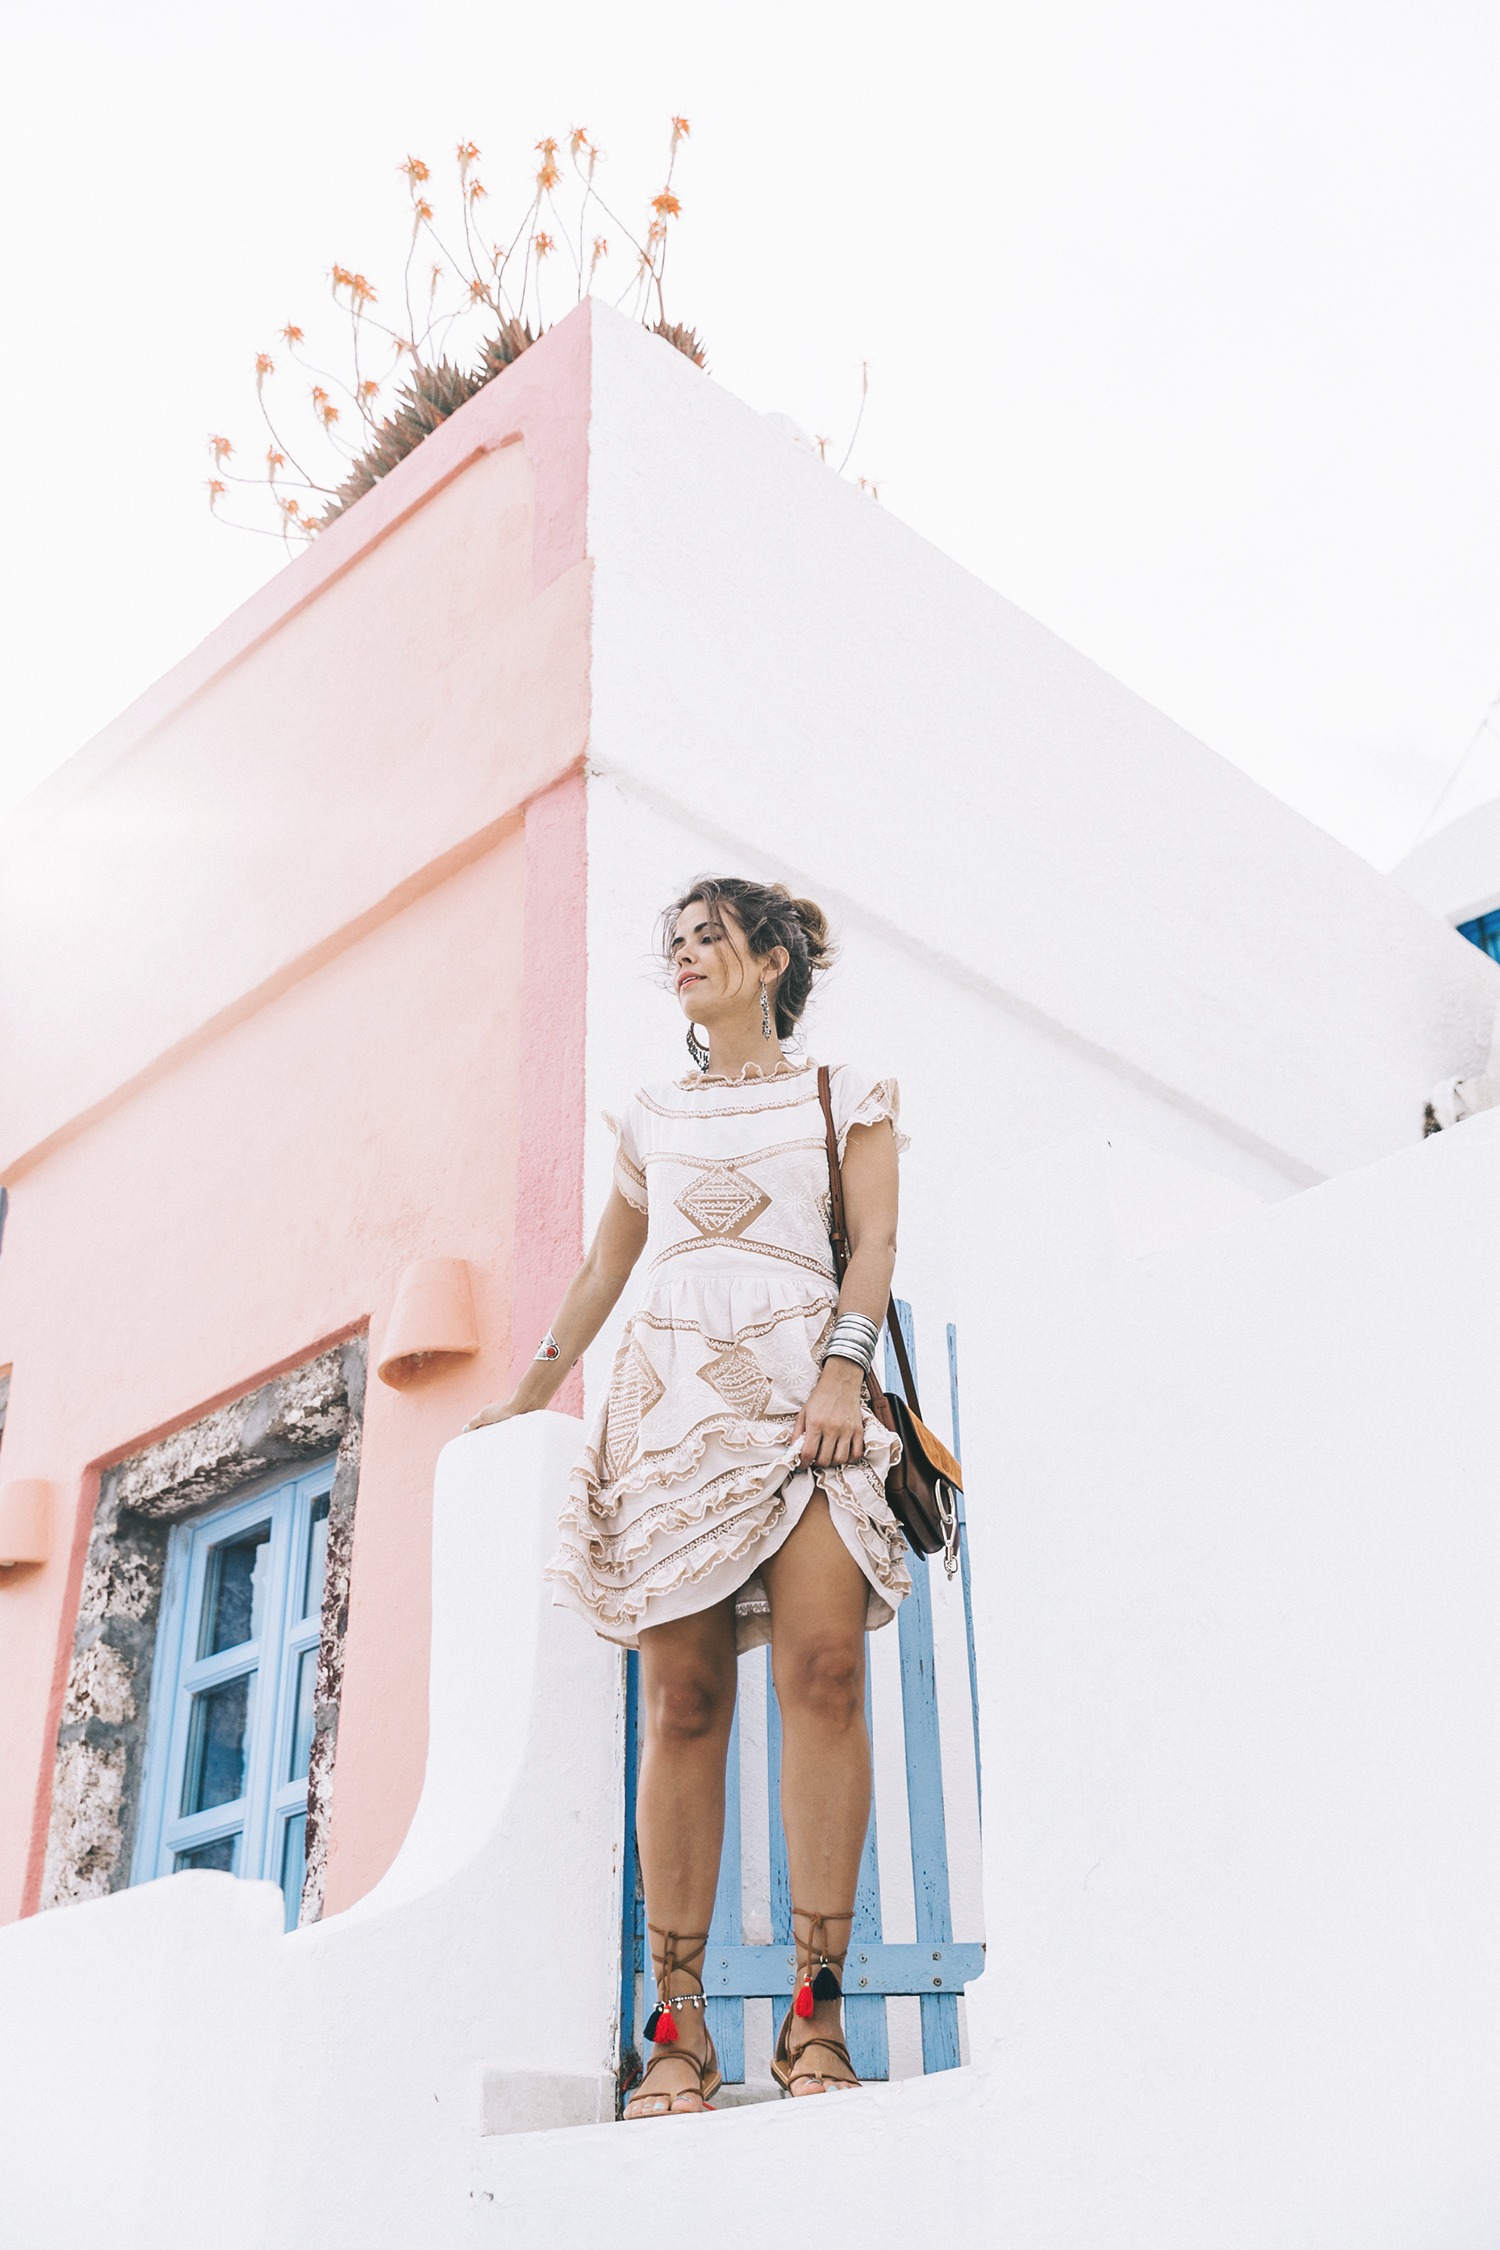 Chloe_Bag-Faye_Bag-For_Love_And_Lemons-Dress-Topknot-Soludos_Escapes-Soludos_Espadrilles-Summer-Santorini-Collage_Vintage-15